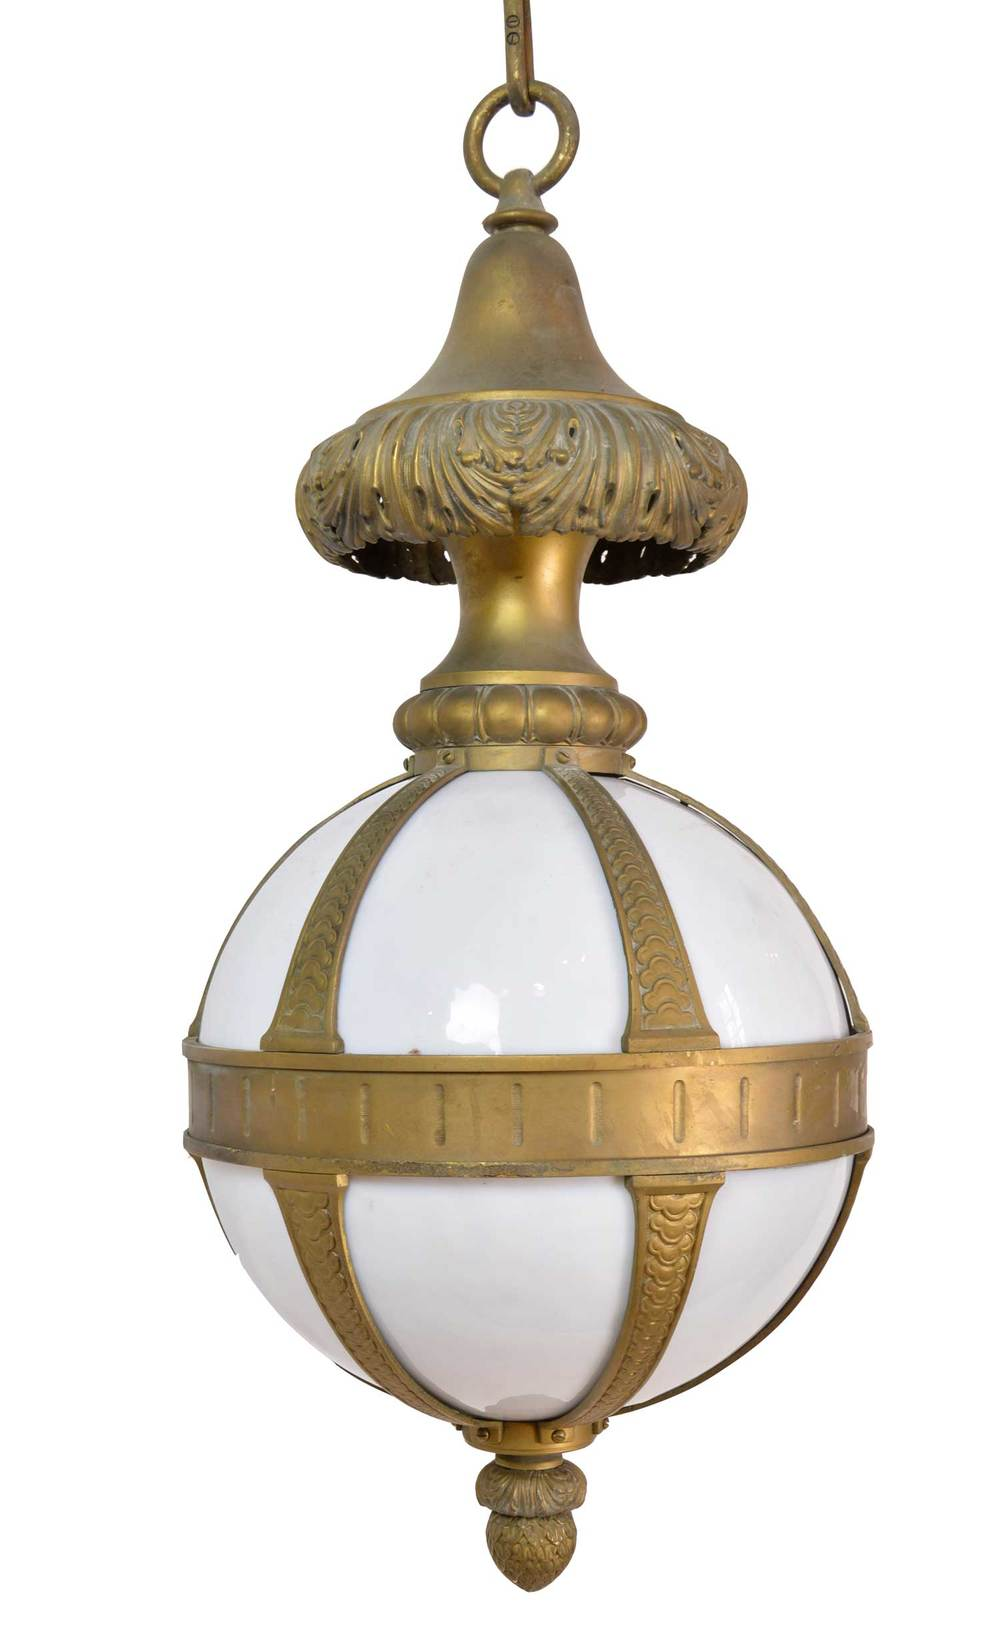 46136-Brass-Light-with-Bent-Glass-bulb.jpg